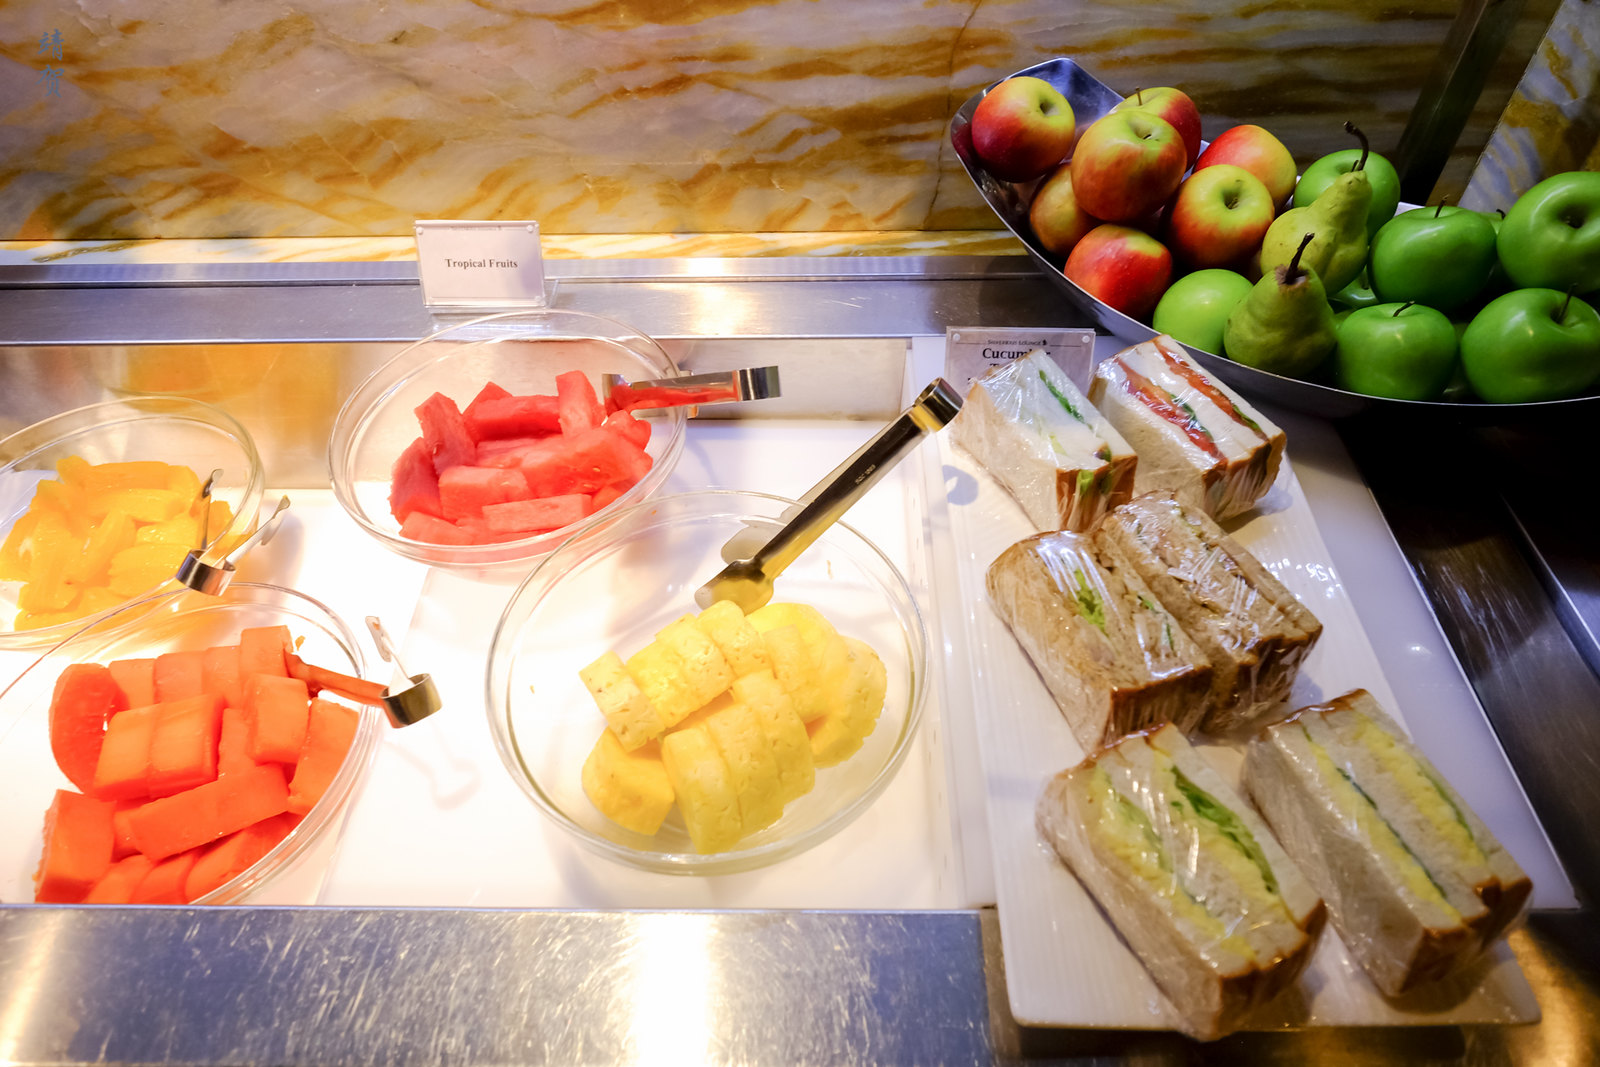 Fruits and sandwiches